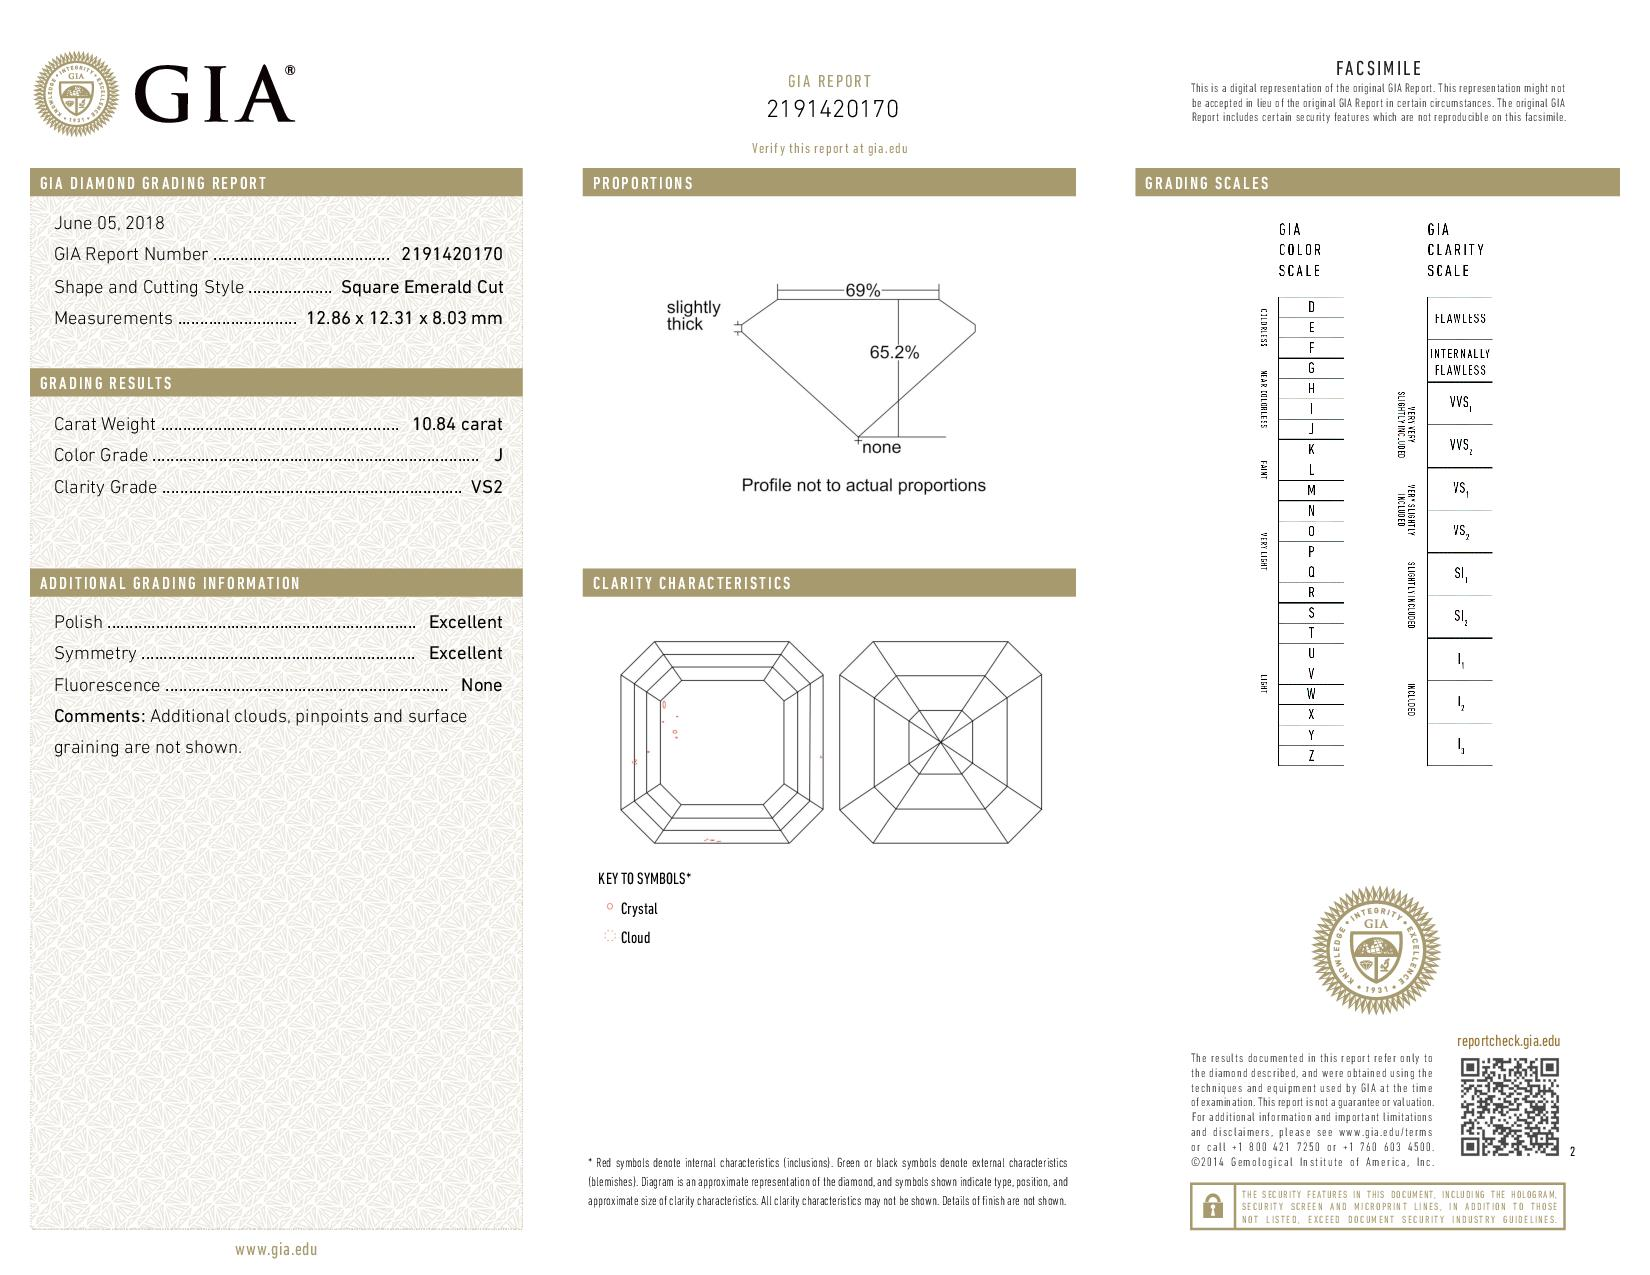 This is a 10.84 carat asscher shape, J color, VS2 clarity natural diamond accompanied by a GIA grading report.